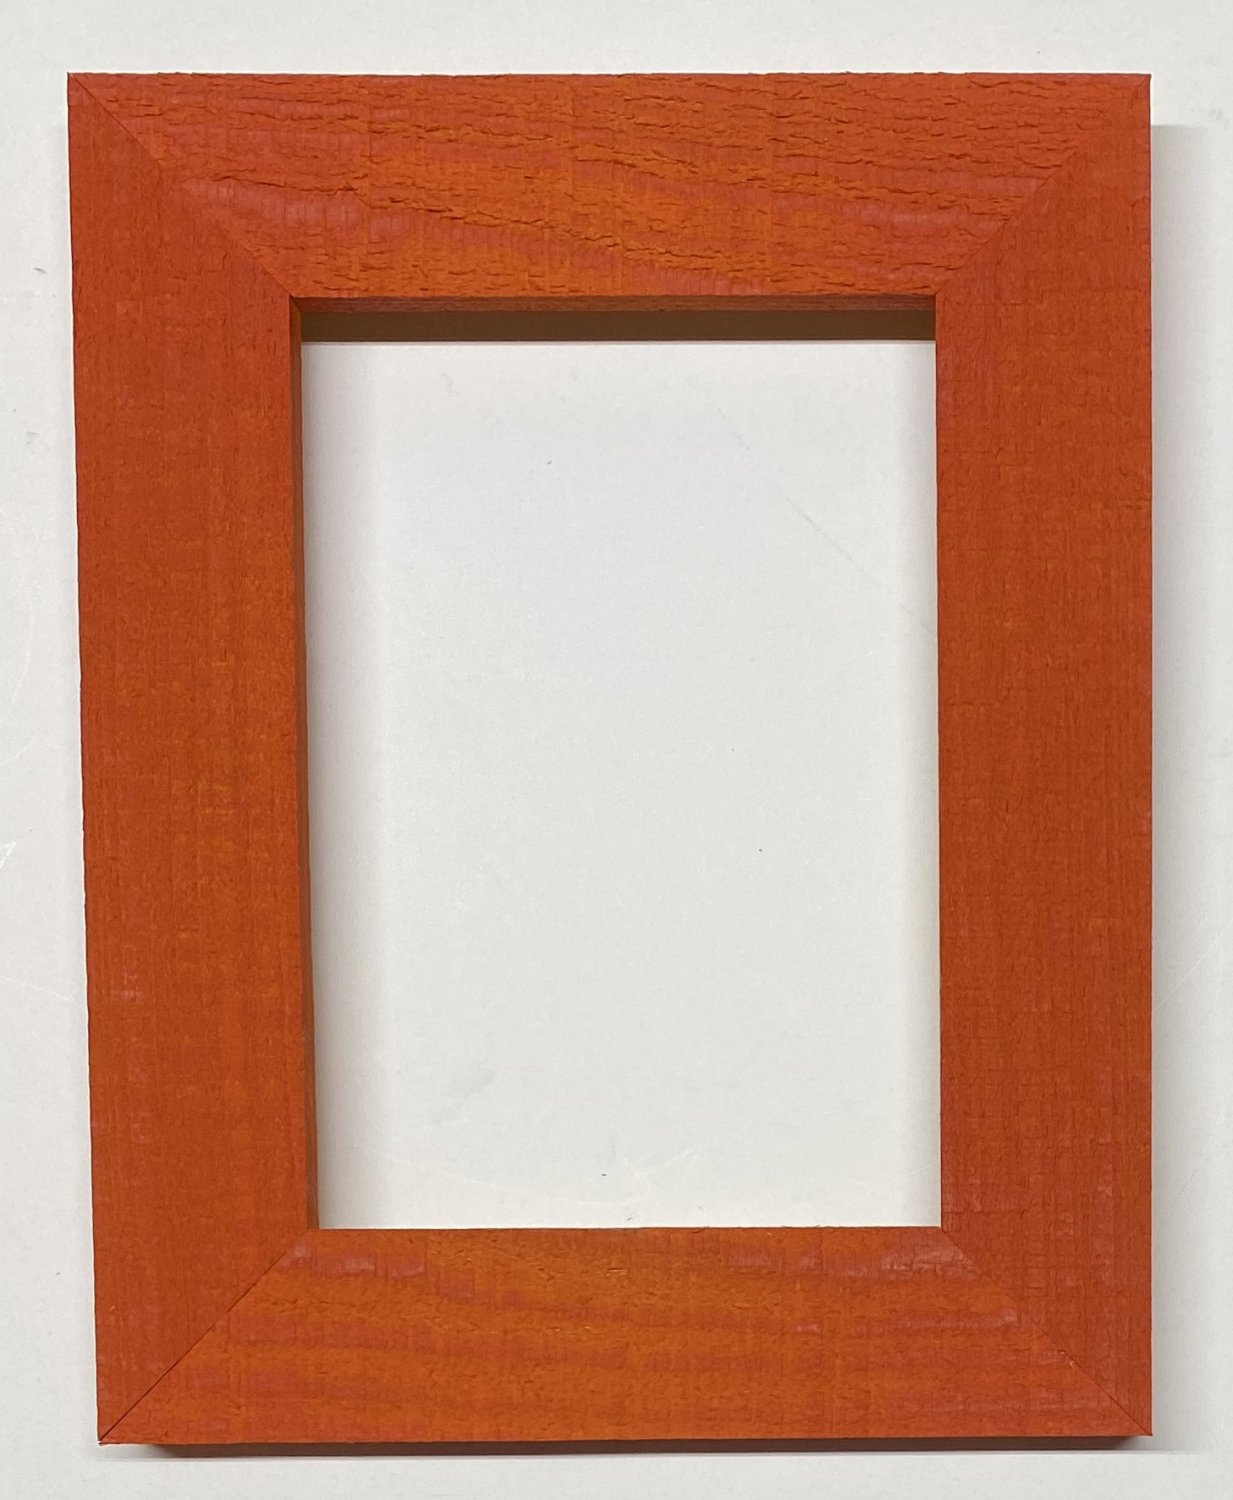 "F012 4 x 6 1-1/2"" Fire Orange Cypress Picture Frame"